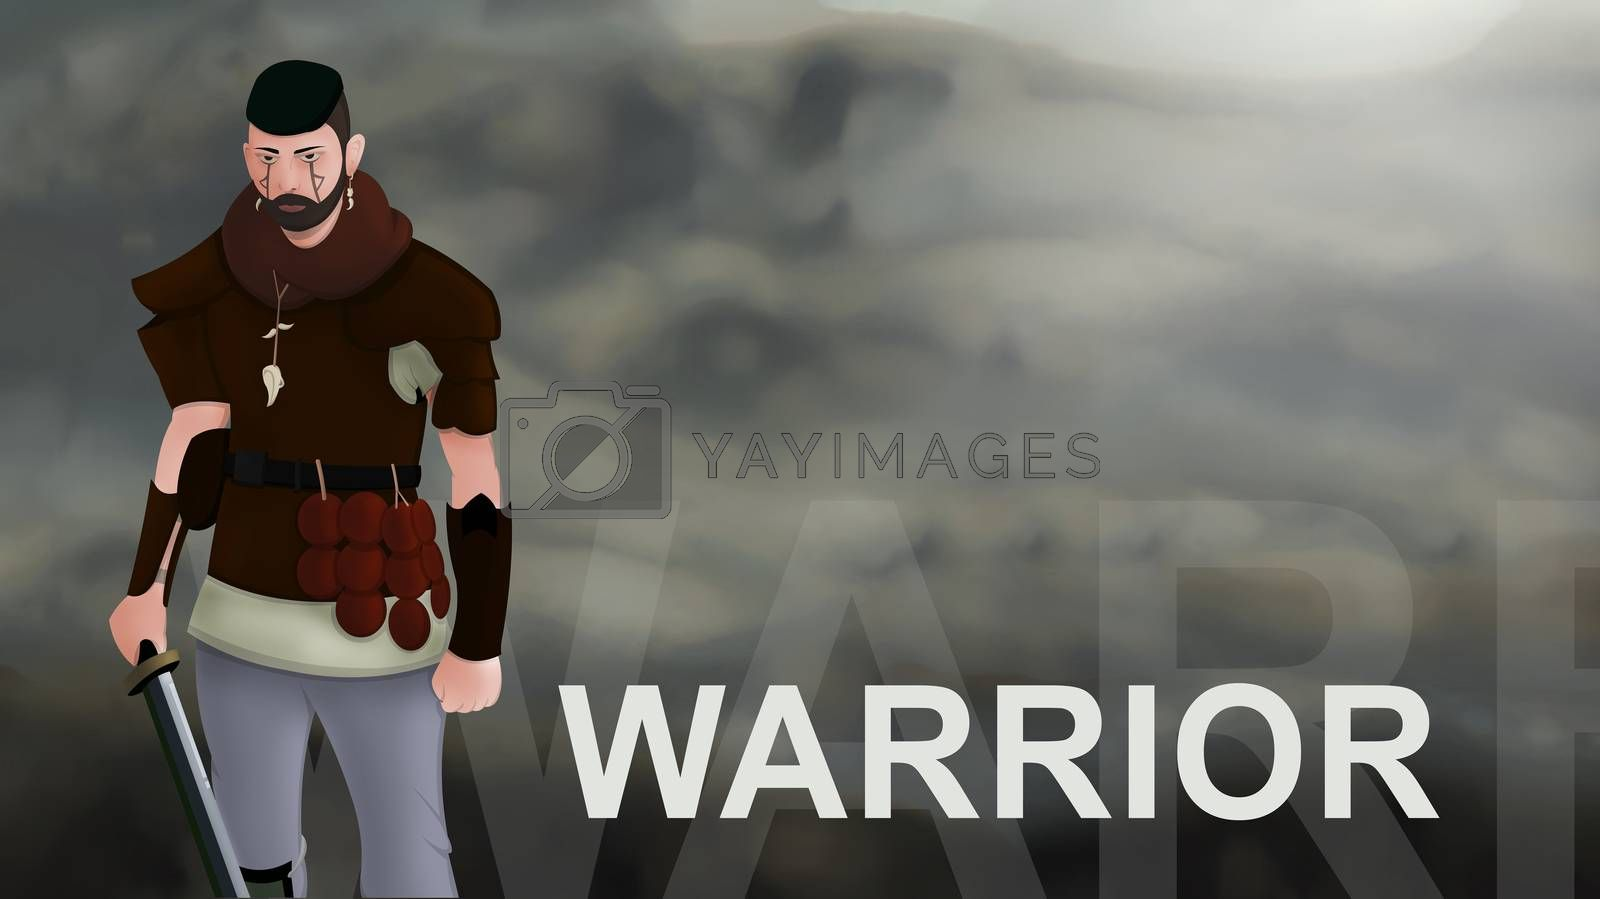 Warrior word text with Warrior armed with sword viking and leather armor on a gradient background. With copyspace for your text. Larp role play. Battle and medieval war. battlefield. Illustration 2d